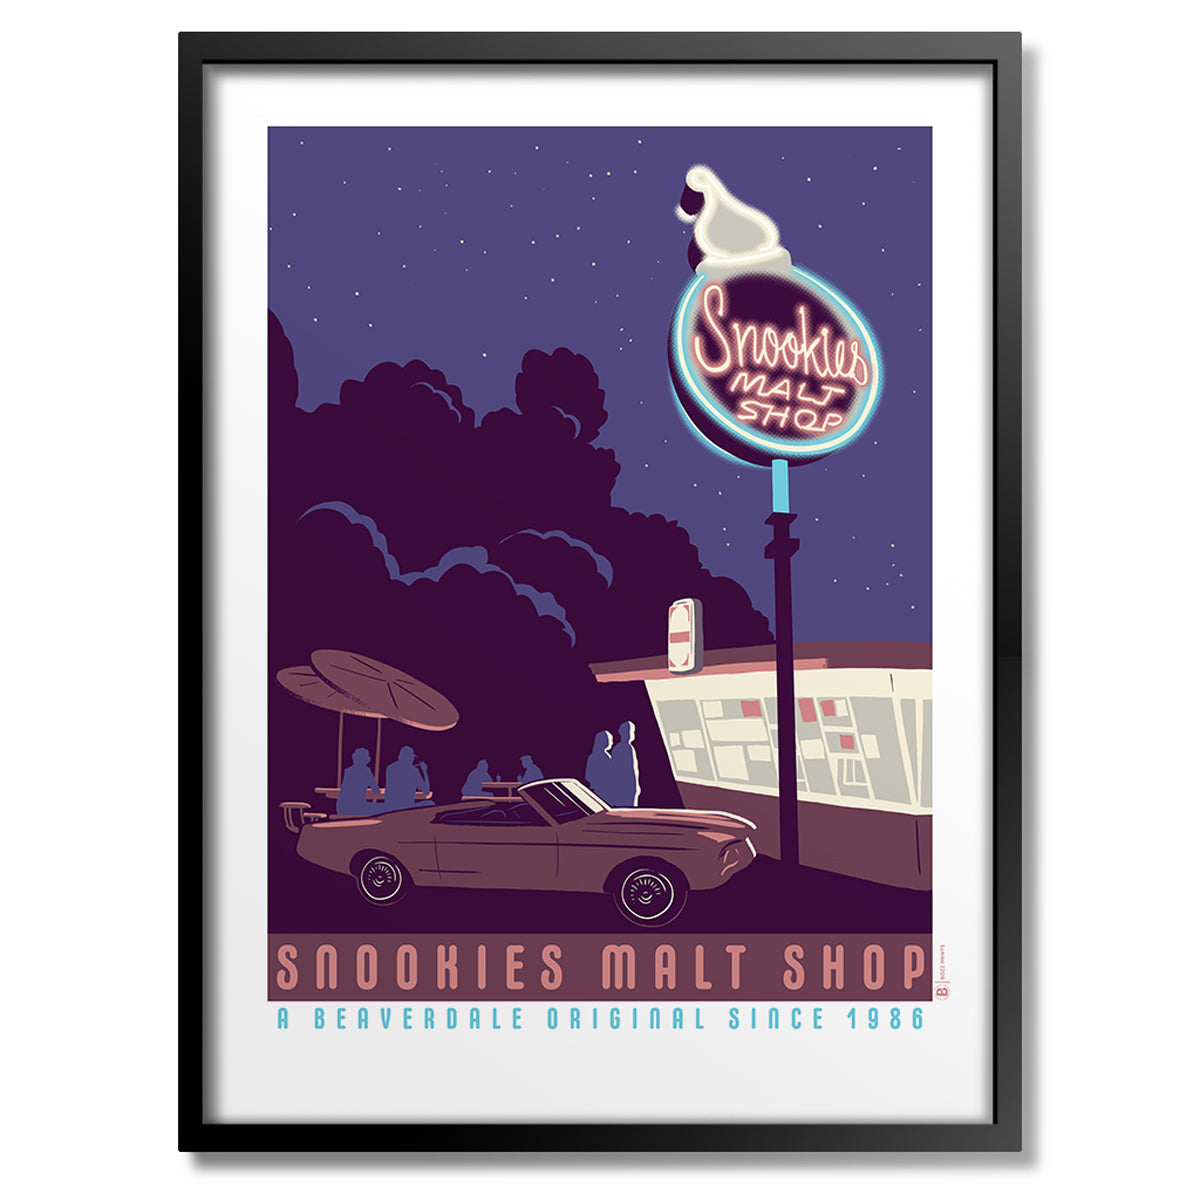 Snookies Malt Shop